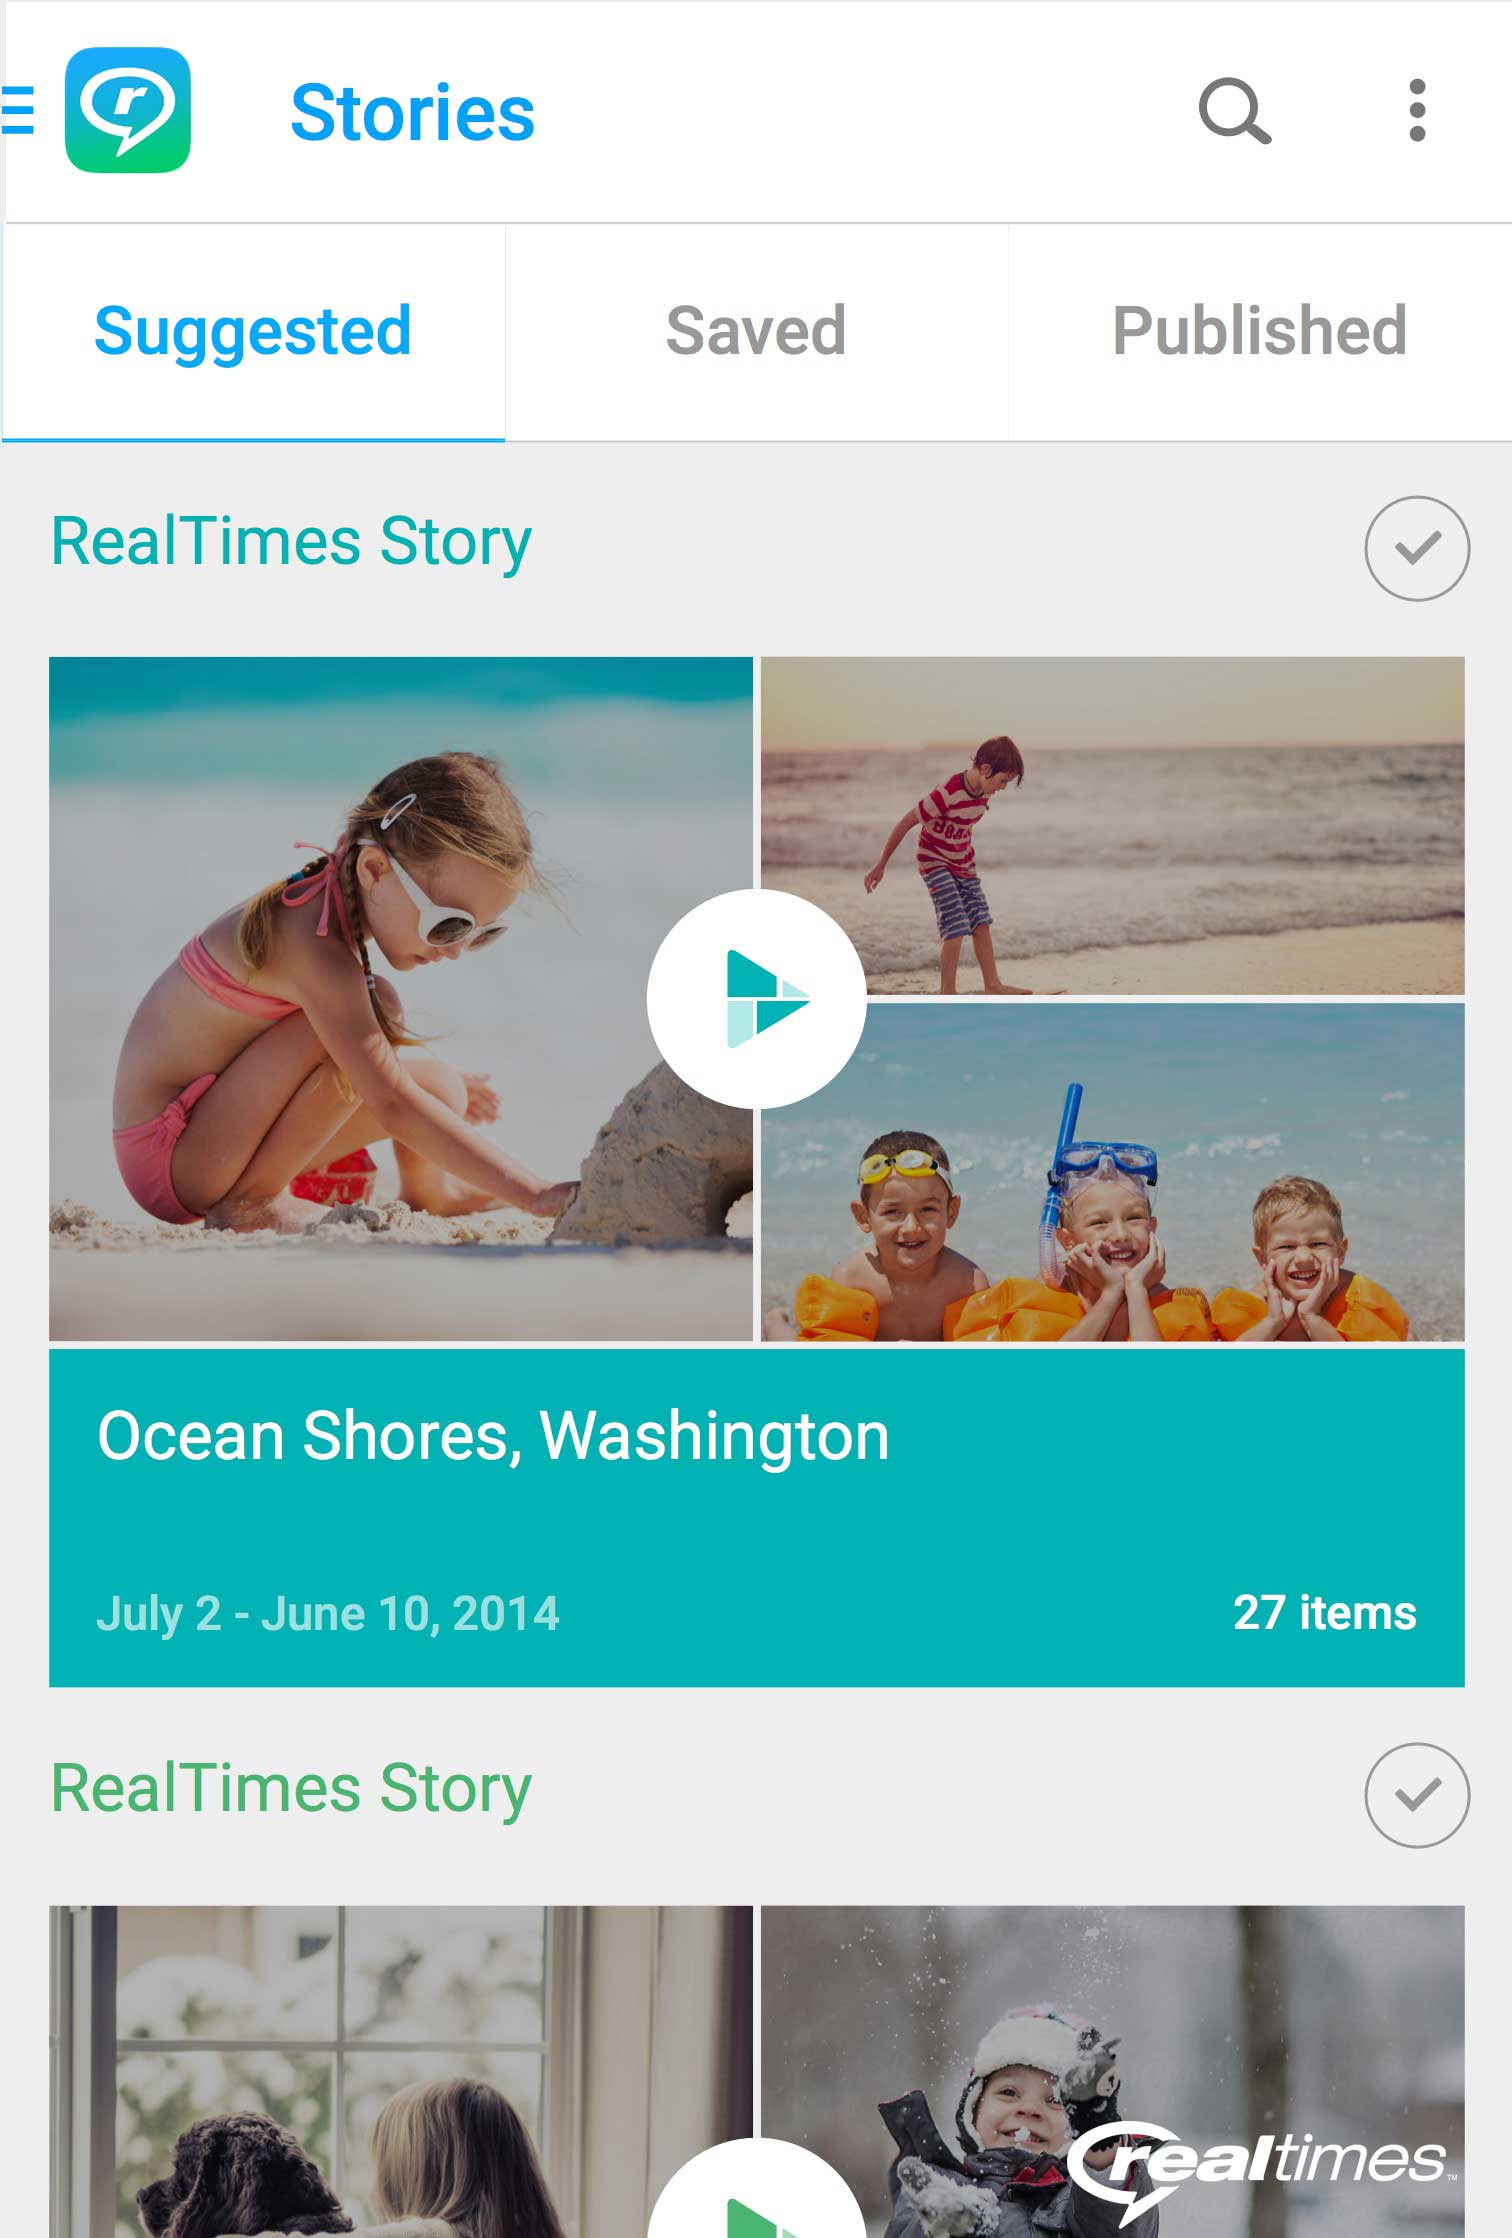 REALNETWORKS LAUNCHES REALTIMES, A BREAKTHROUGH IN HELPING CREATE